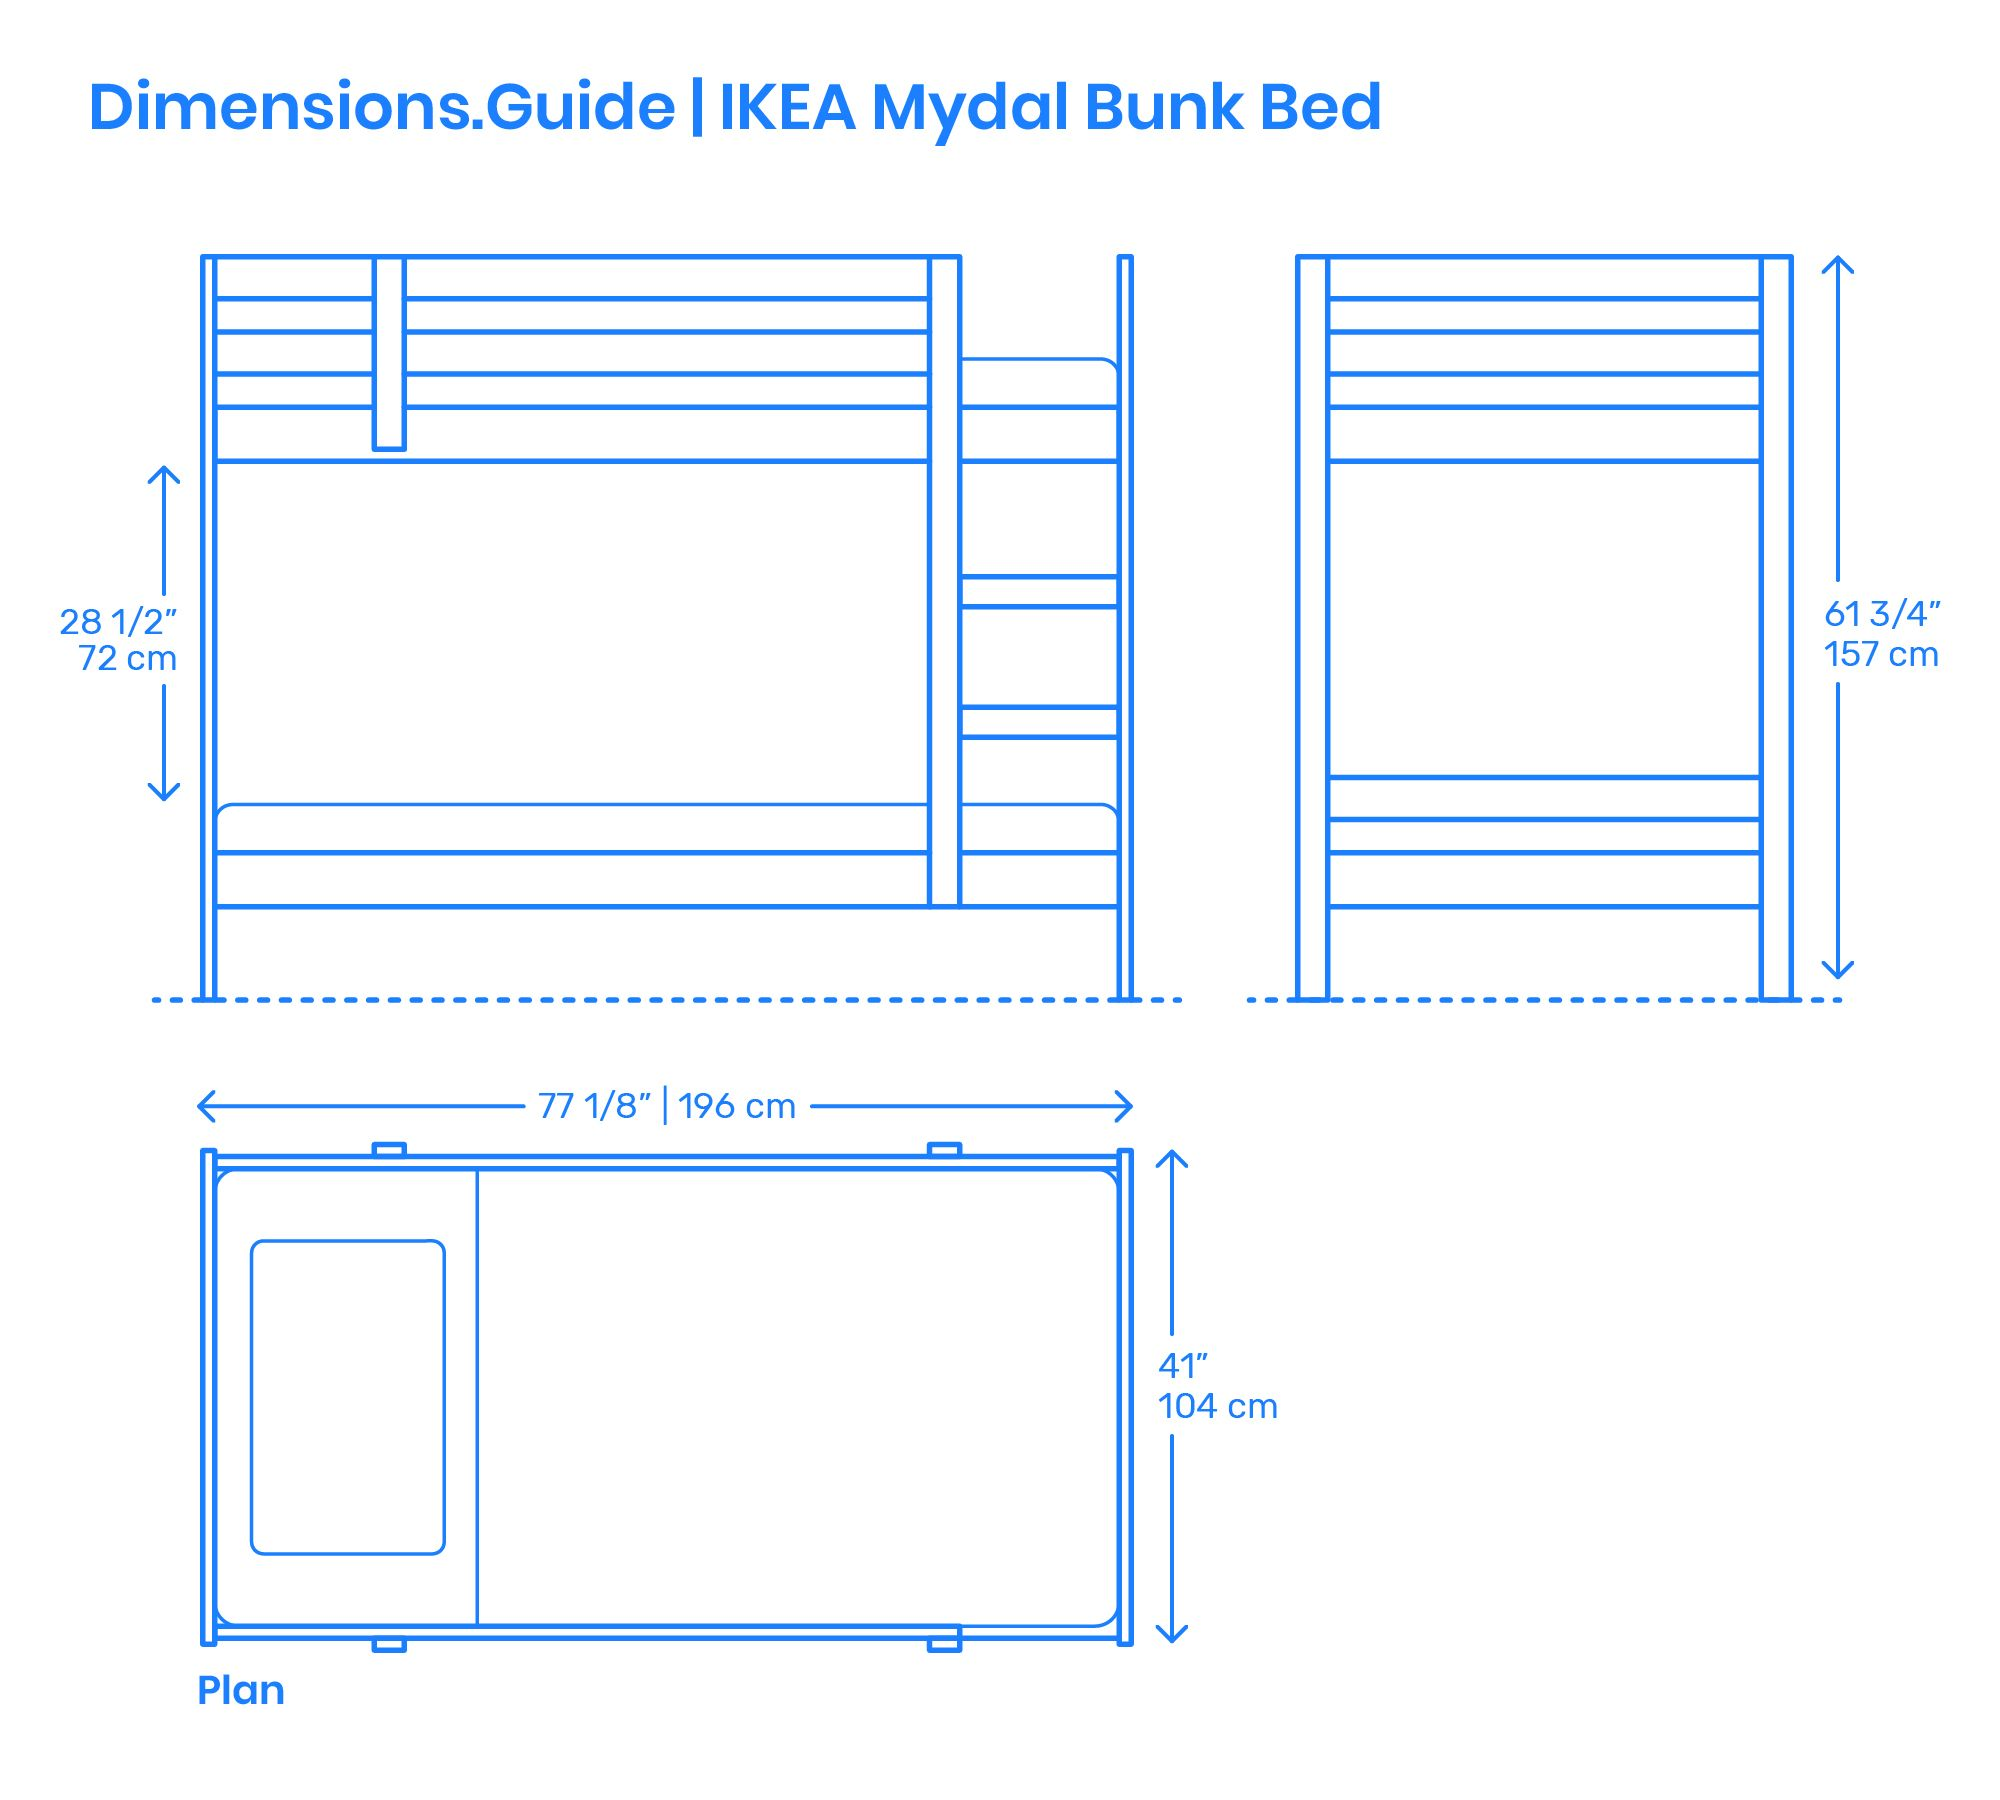 The Ikea Mydal Bunk Bed Is An Untreated Solid Pine Wood Bunk Bed That Can Be Left Natural Or Painted As Desired The Ikea M Ikea Mydal Bunk Beds Bed Dimensions